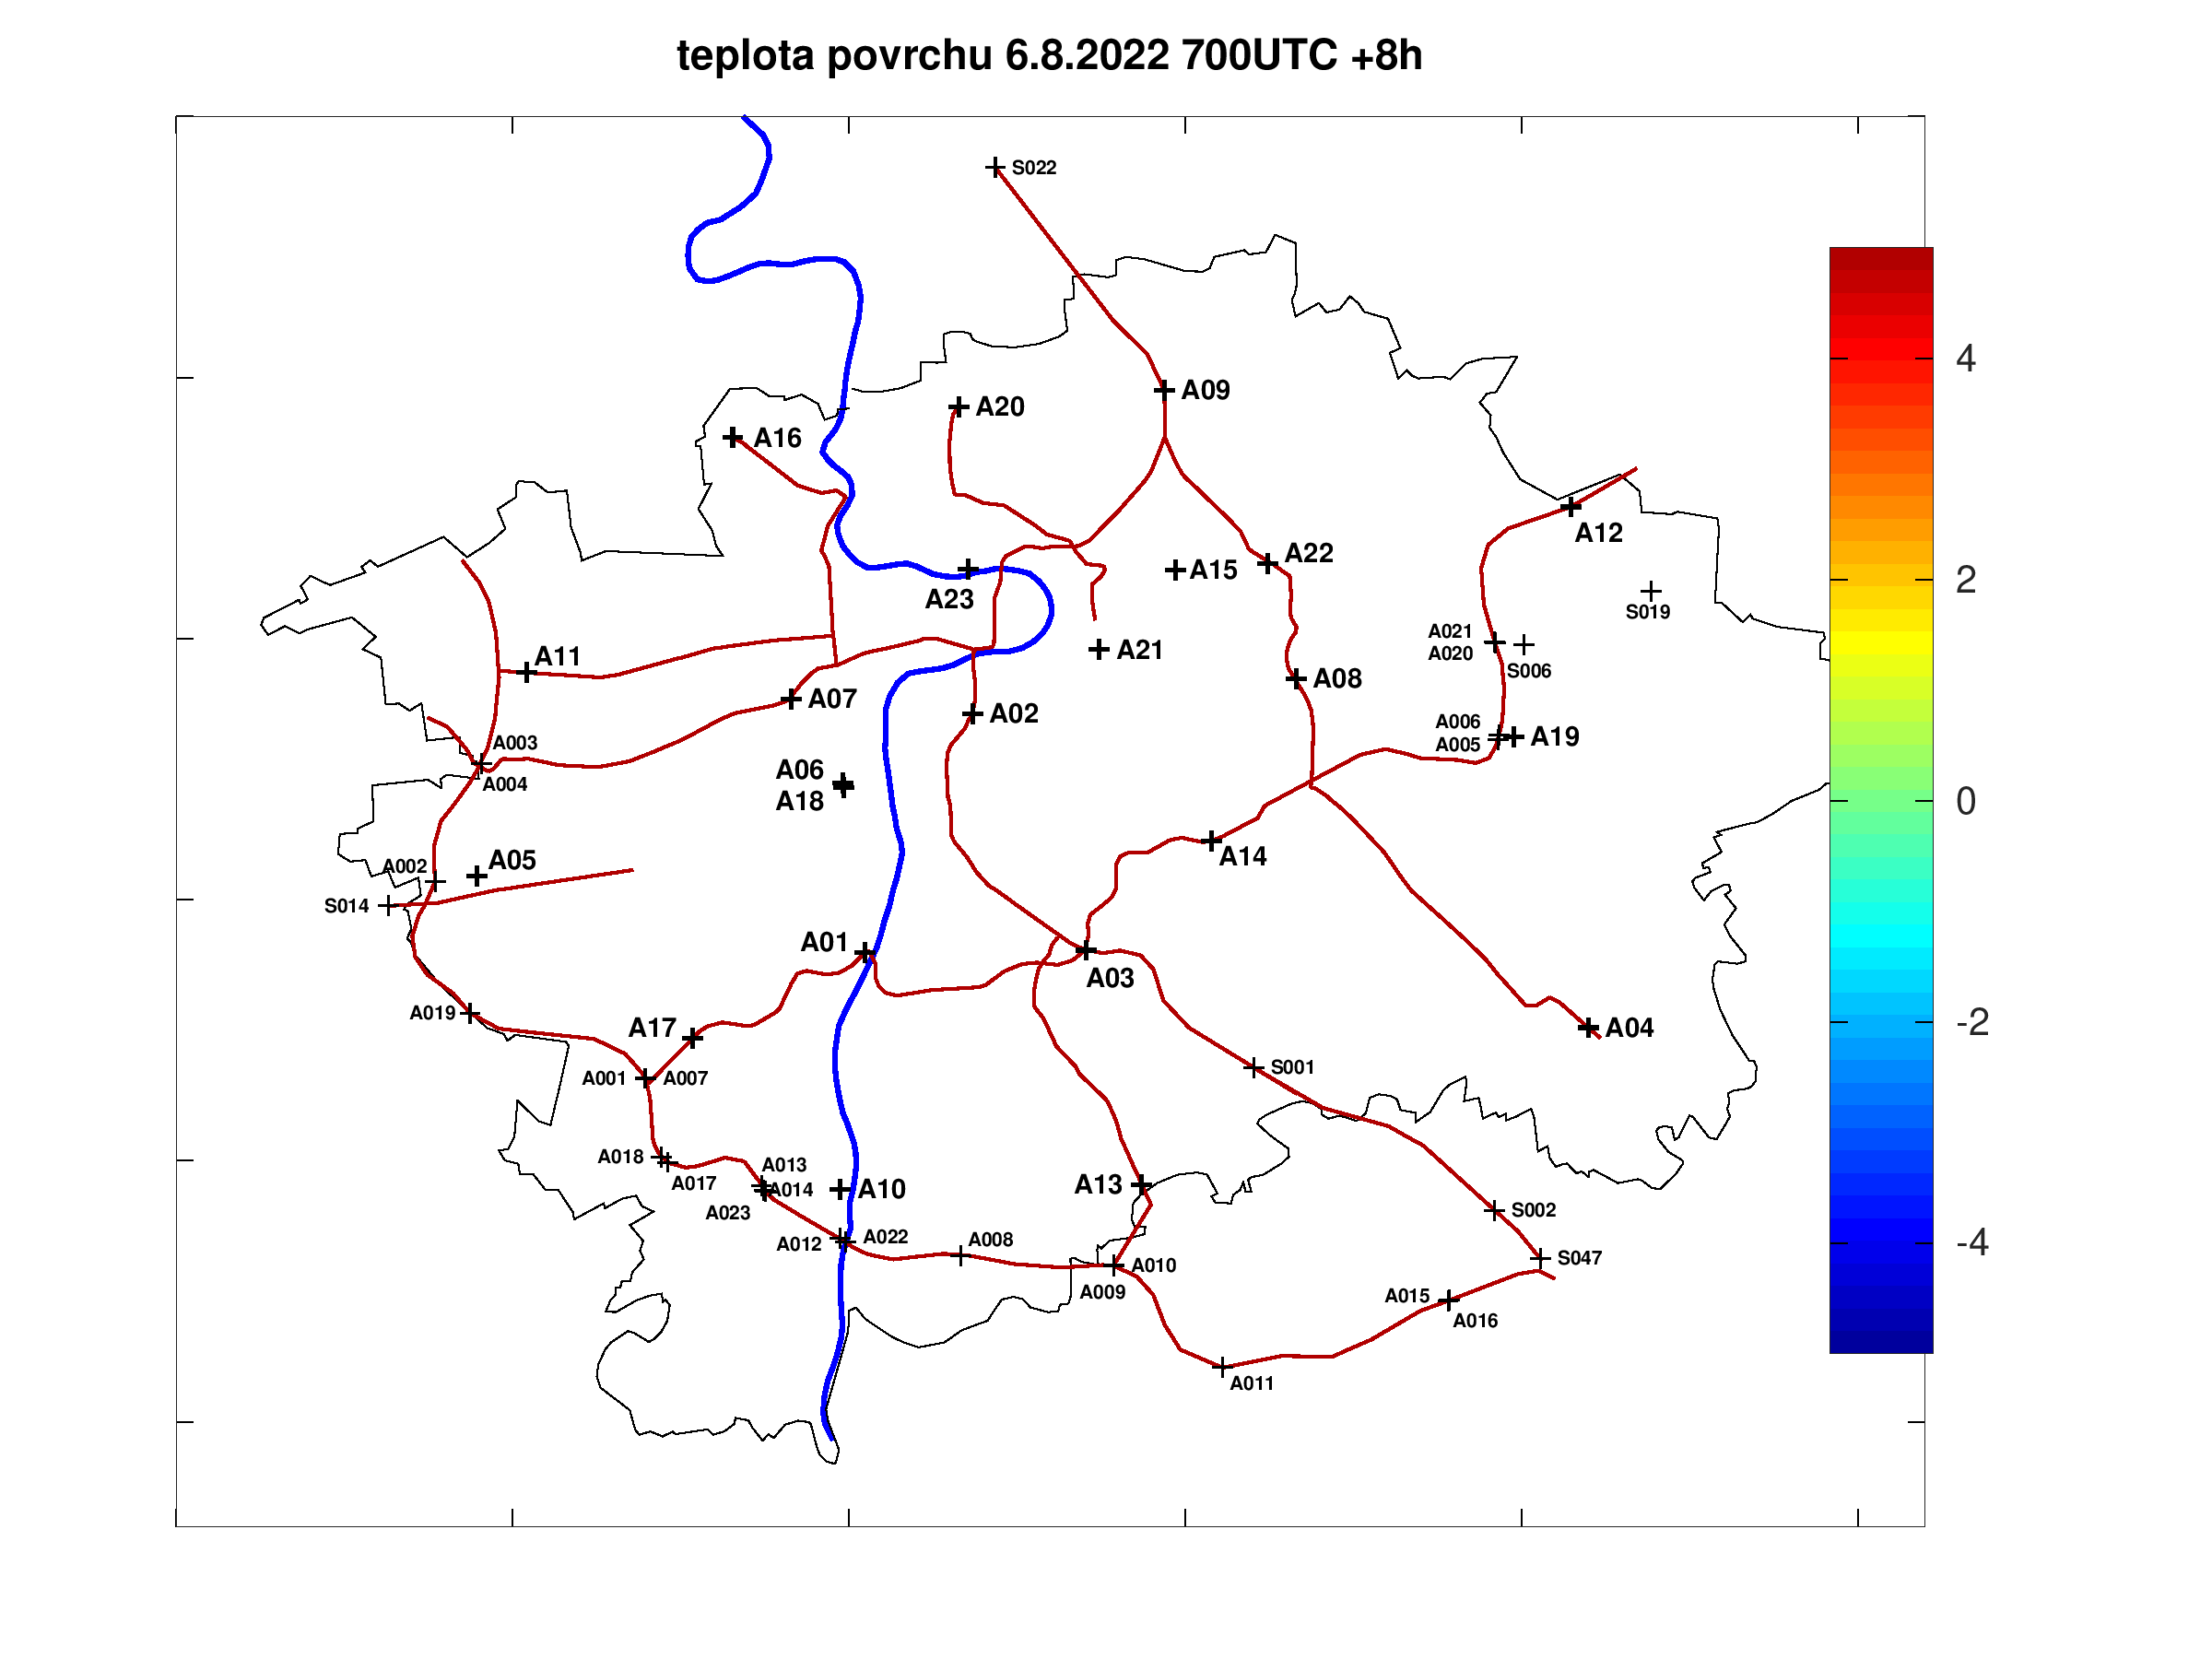 Road surface teperature forecast for Prague +8h